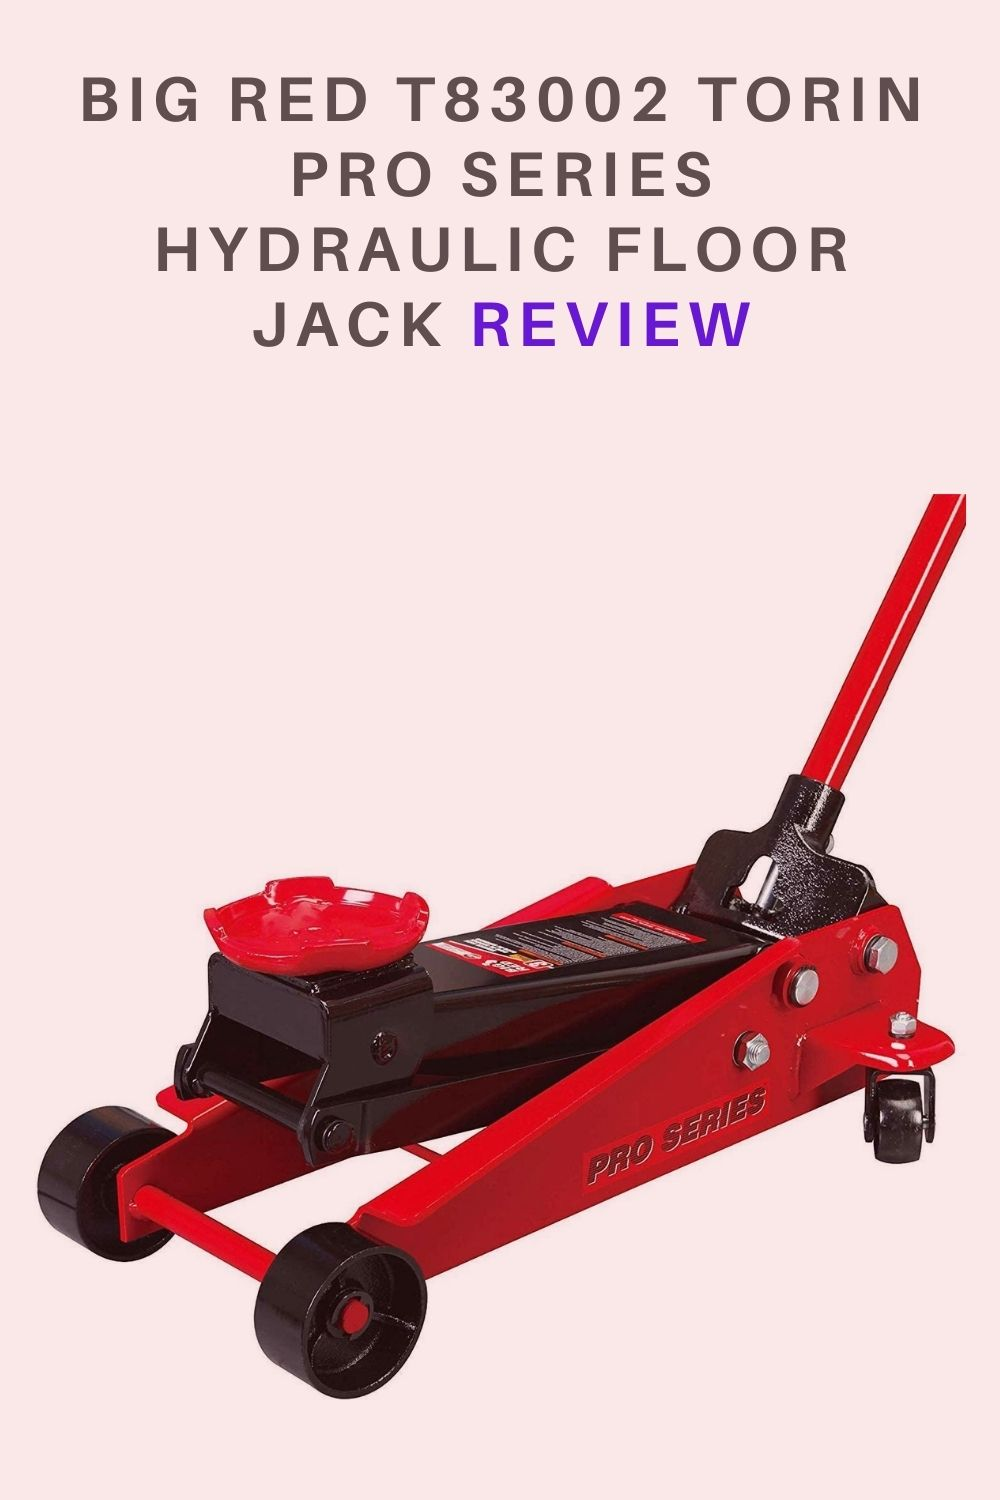 BIG RED T83002 Torin Pro Series Hydraulic Floor Jack  Red Review